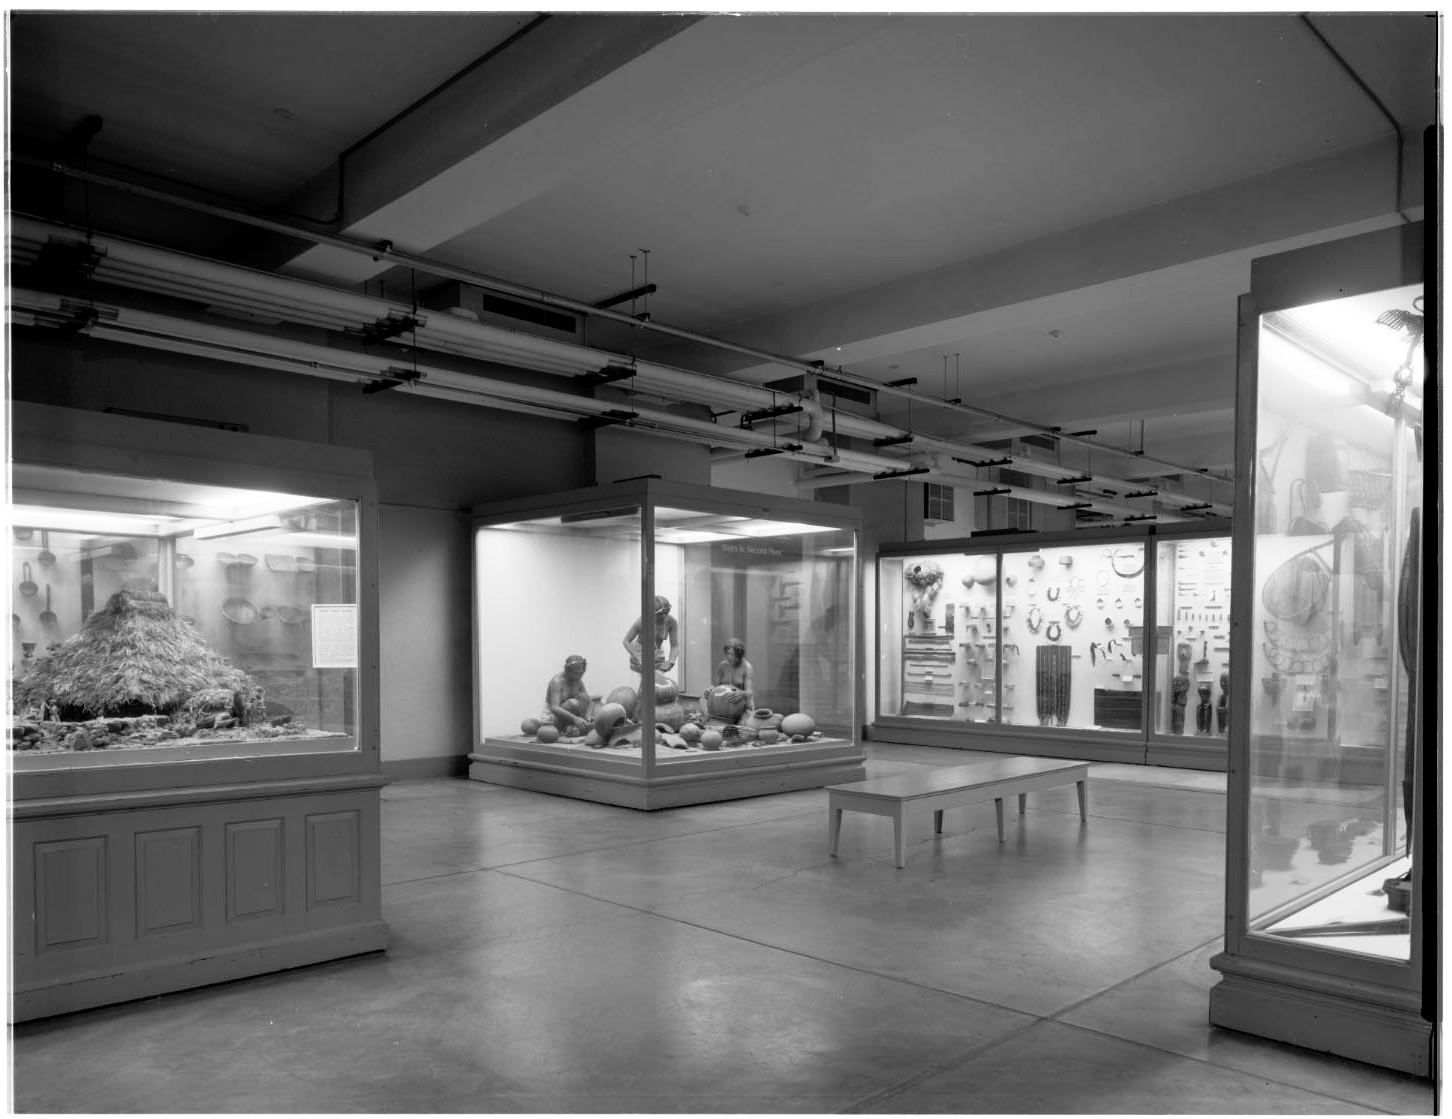 Hall A Philippines overall view documentary record of exhibit cases and dioramas before deinstallation, includes Igorot Pottery makers diorama (c) Field Museum of Natural History - CC BY-NC